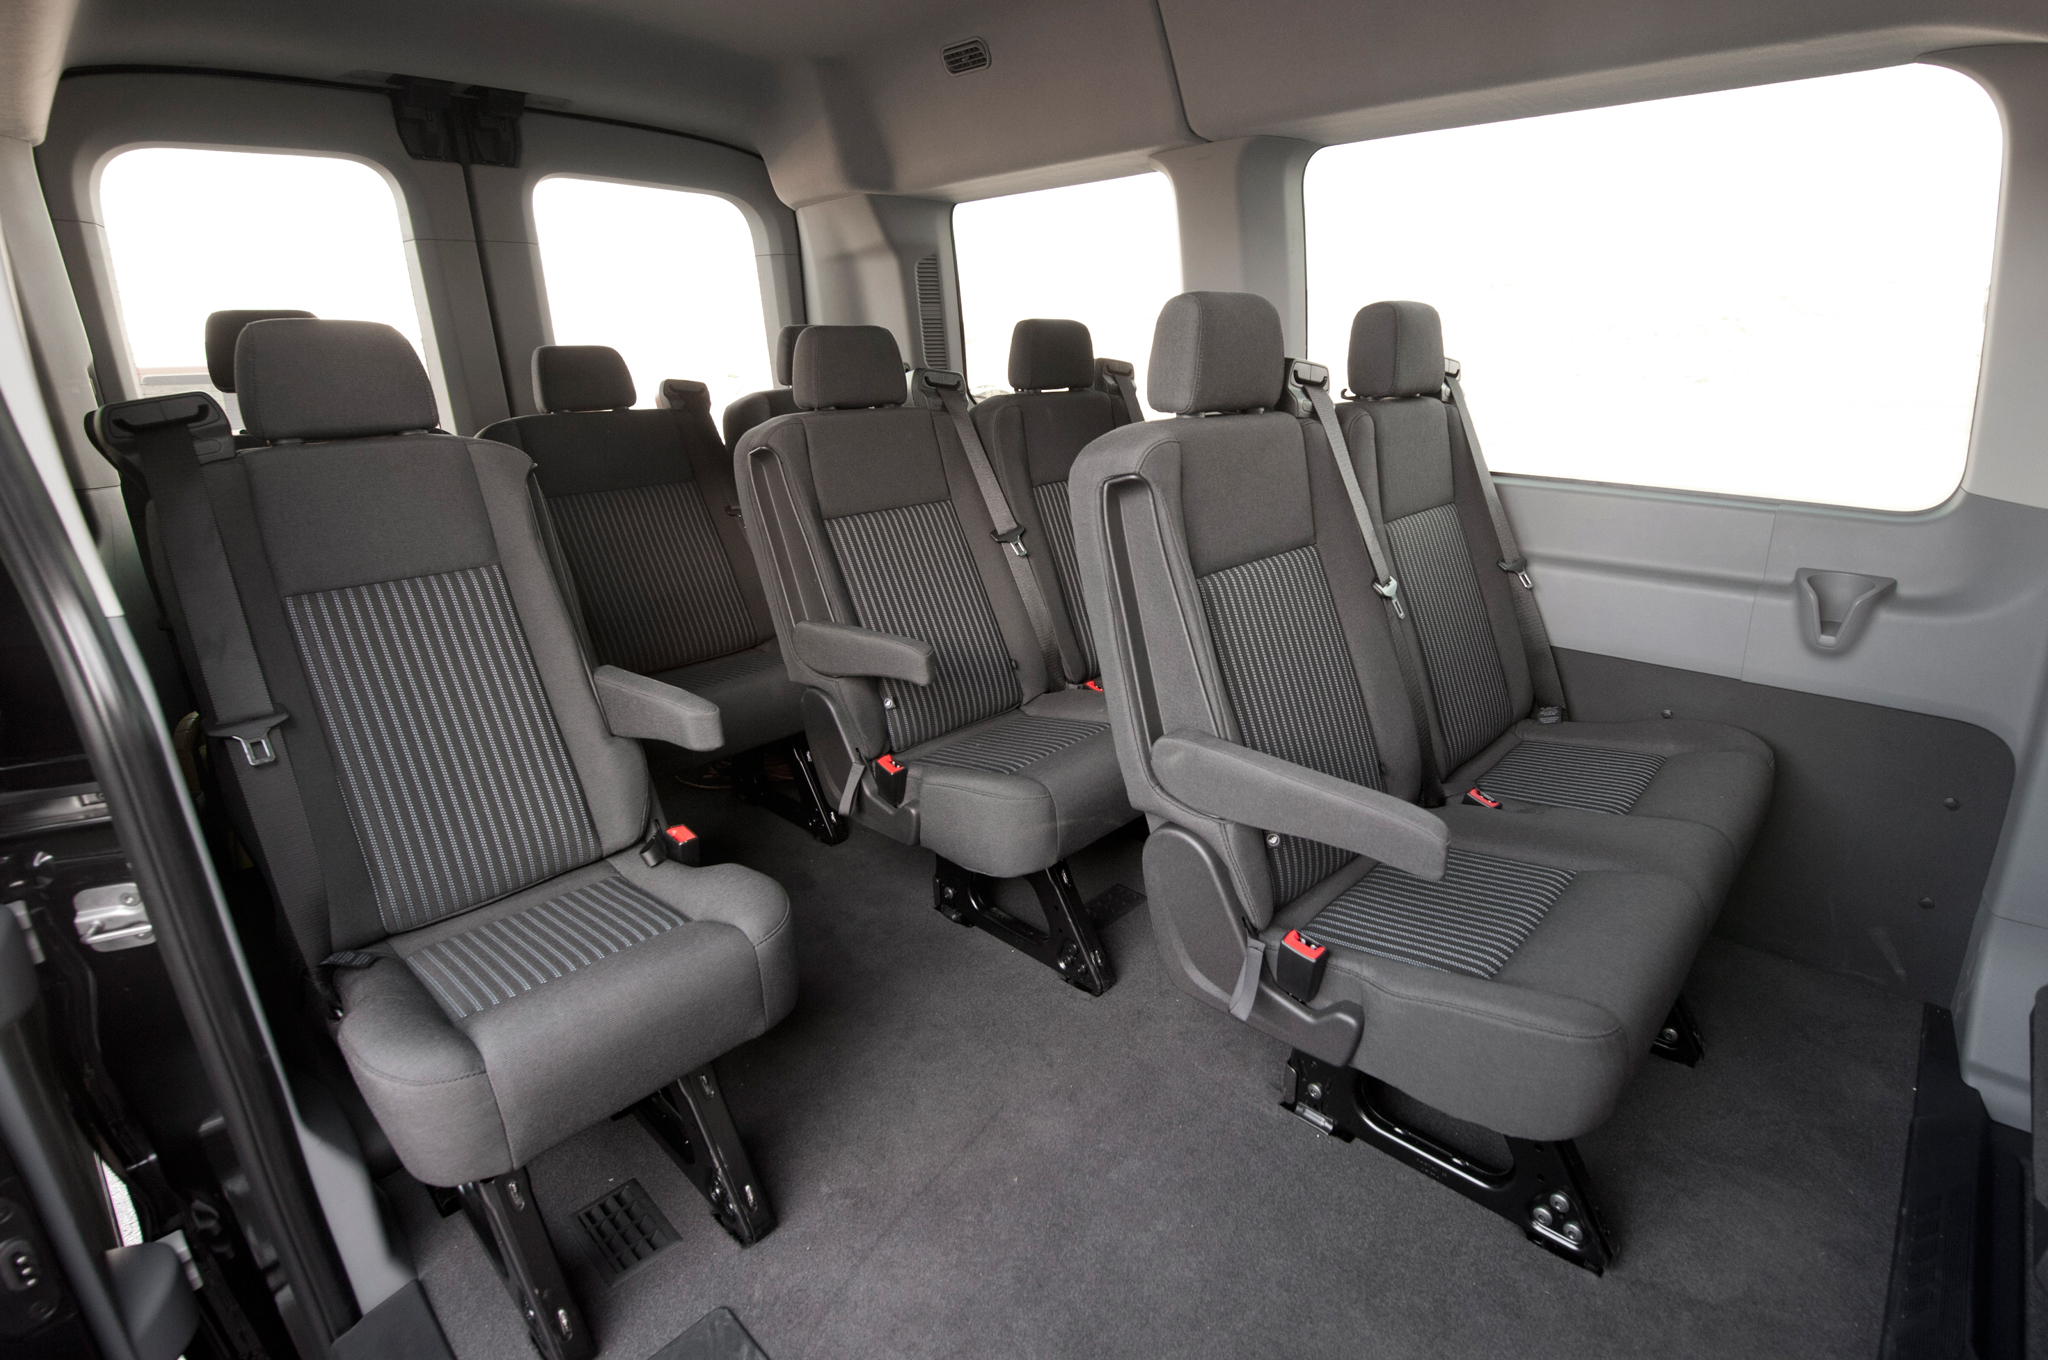 2015 ford transit 150 seats interior gallery photo 6 of 13. Black Bedroom Furniture Sets. Home Design Ideas